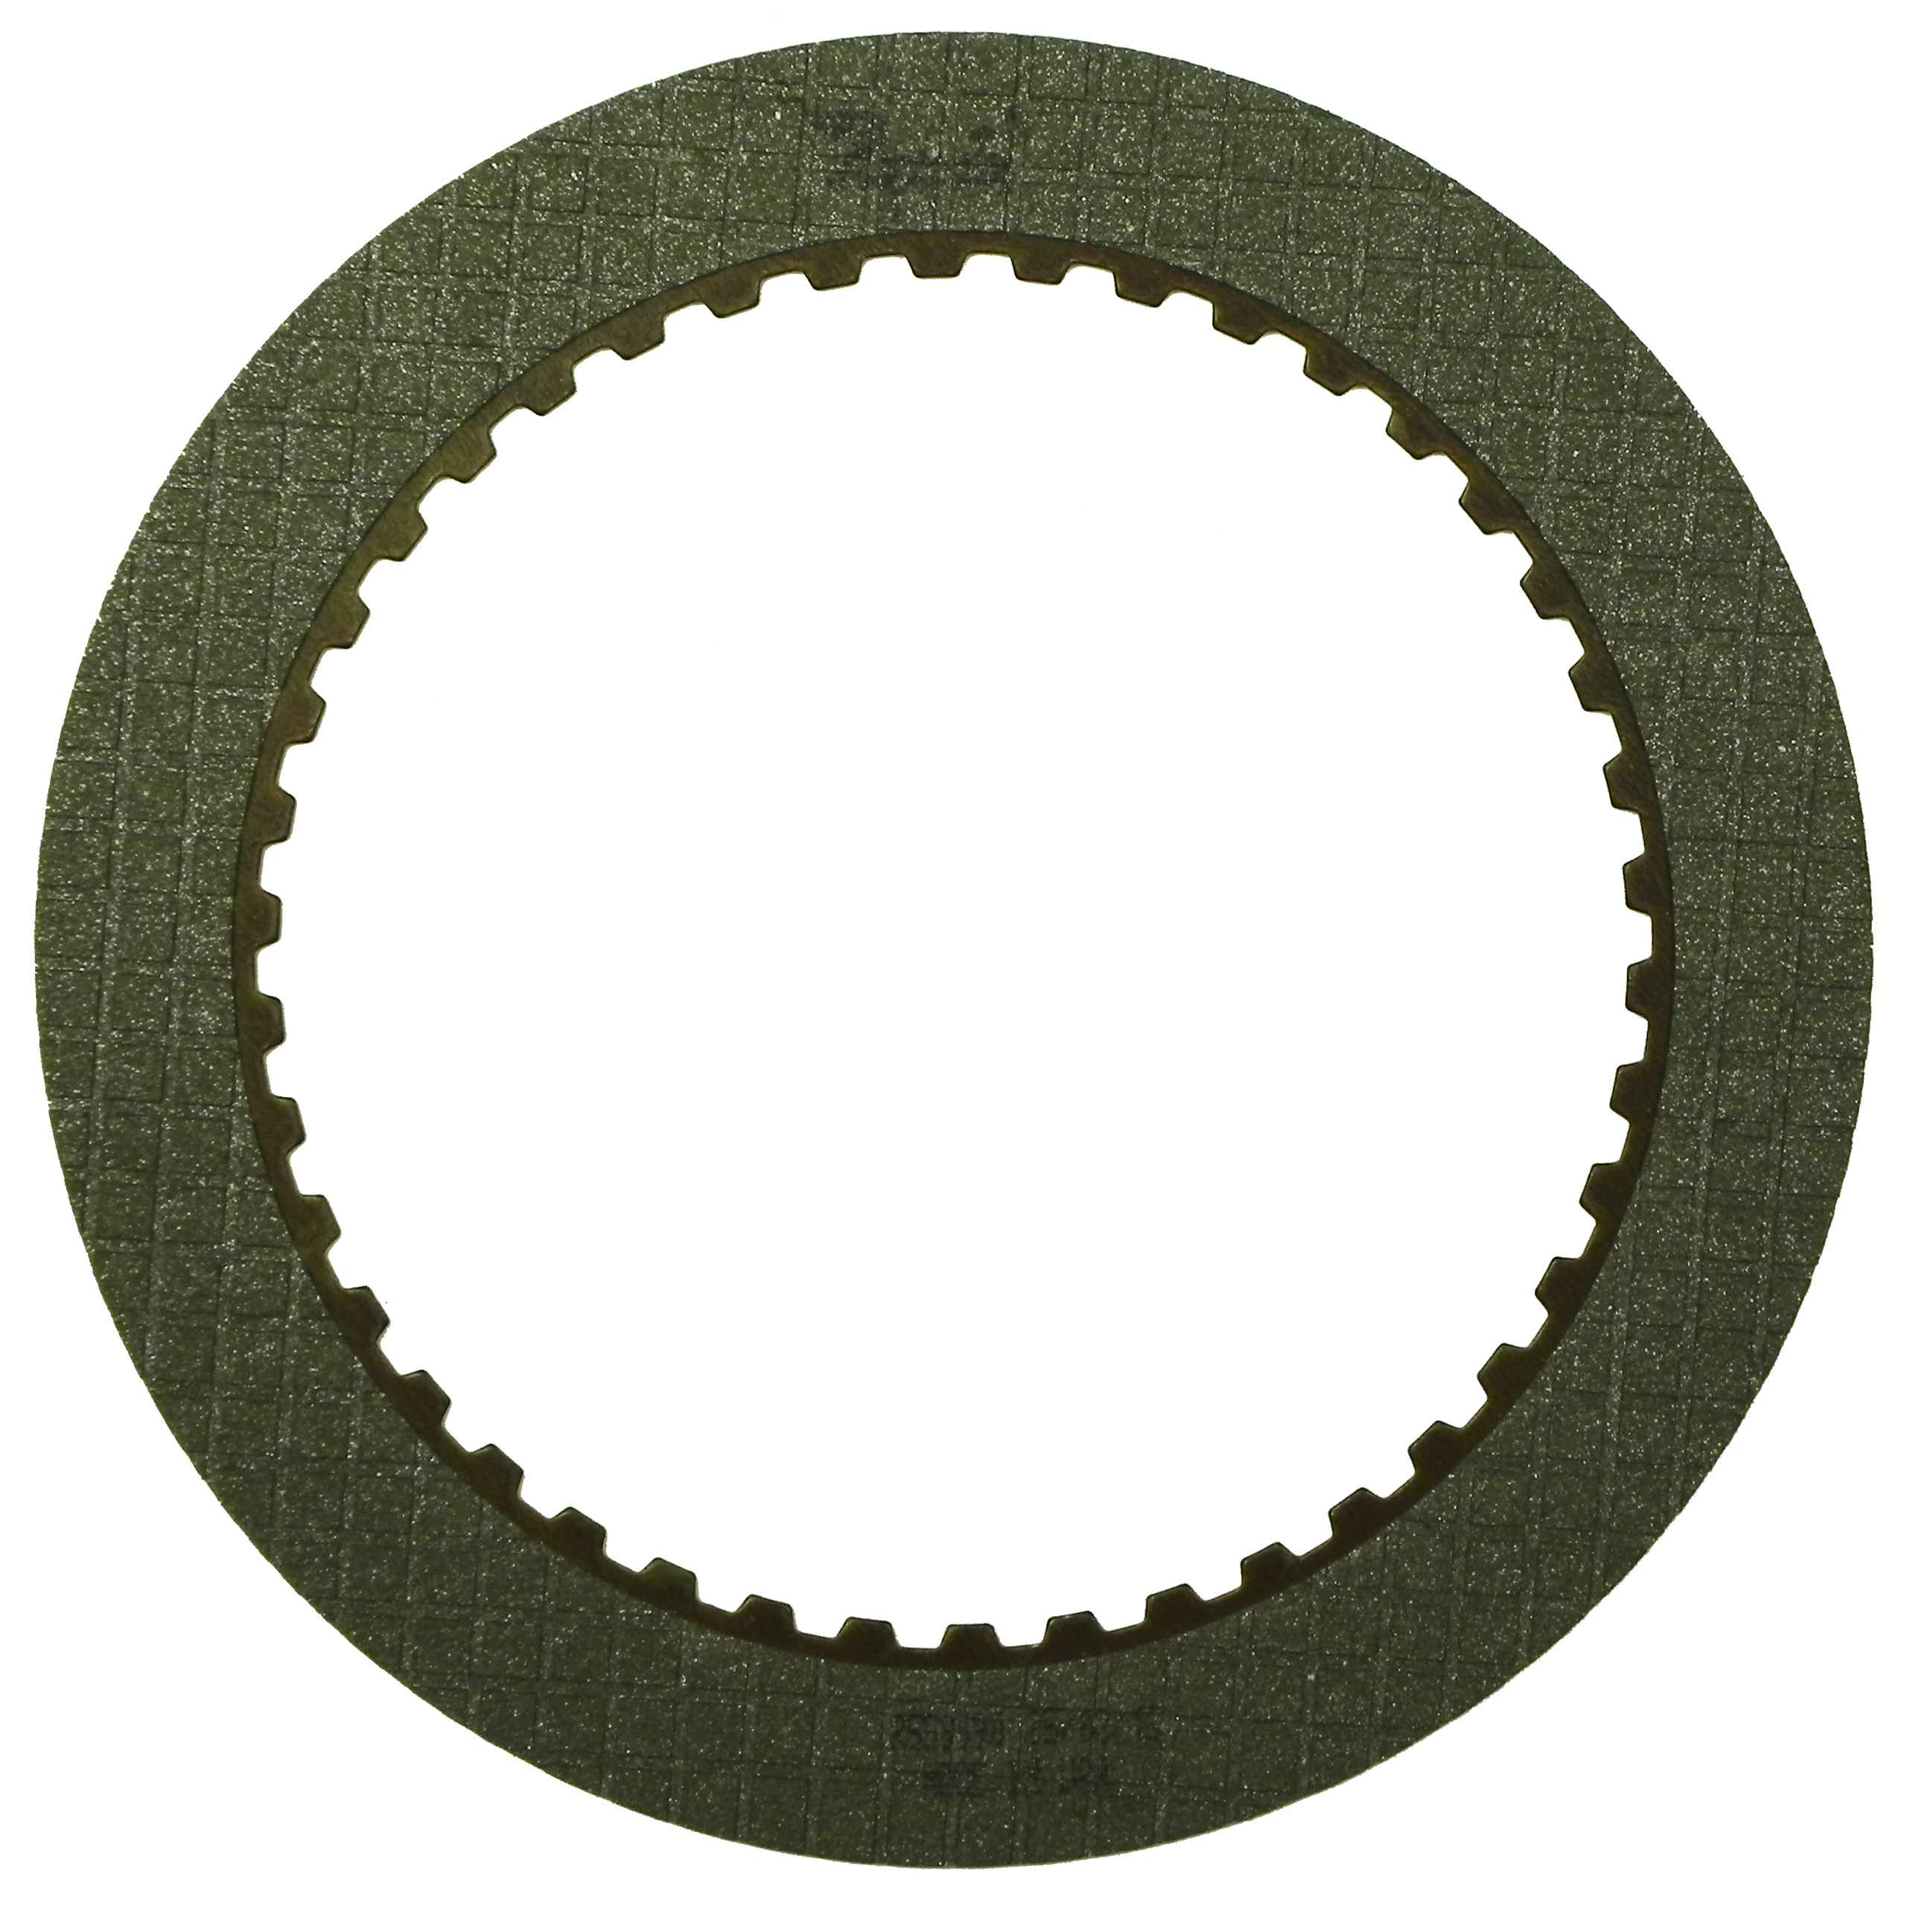 TH400, 3L80, TH400-R2, TH425, THMR2, 3L80HD, TH375, TH475, 4L80E, 4L85E Graphitic Friction Clutch Plate